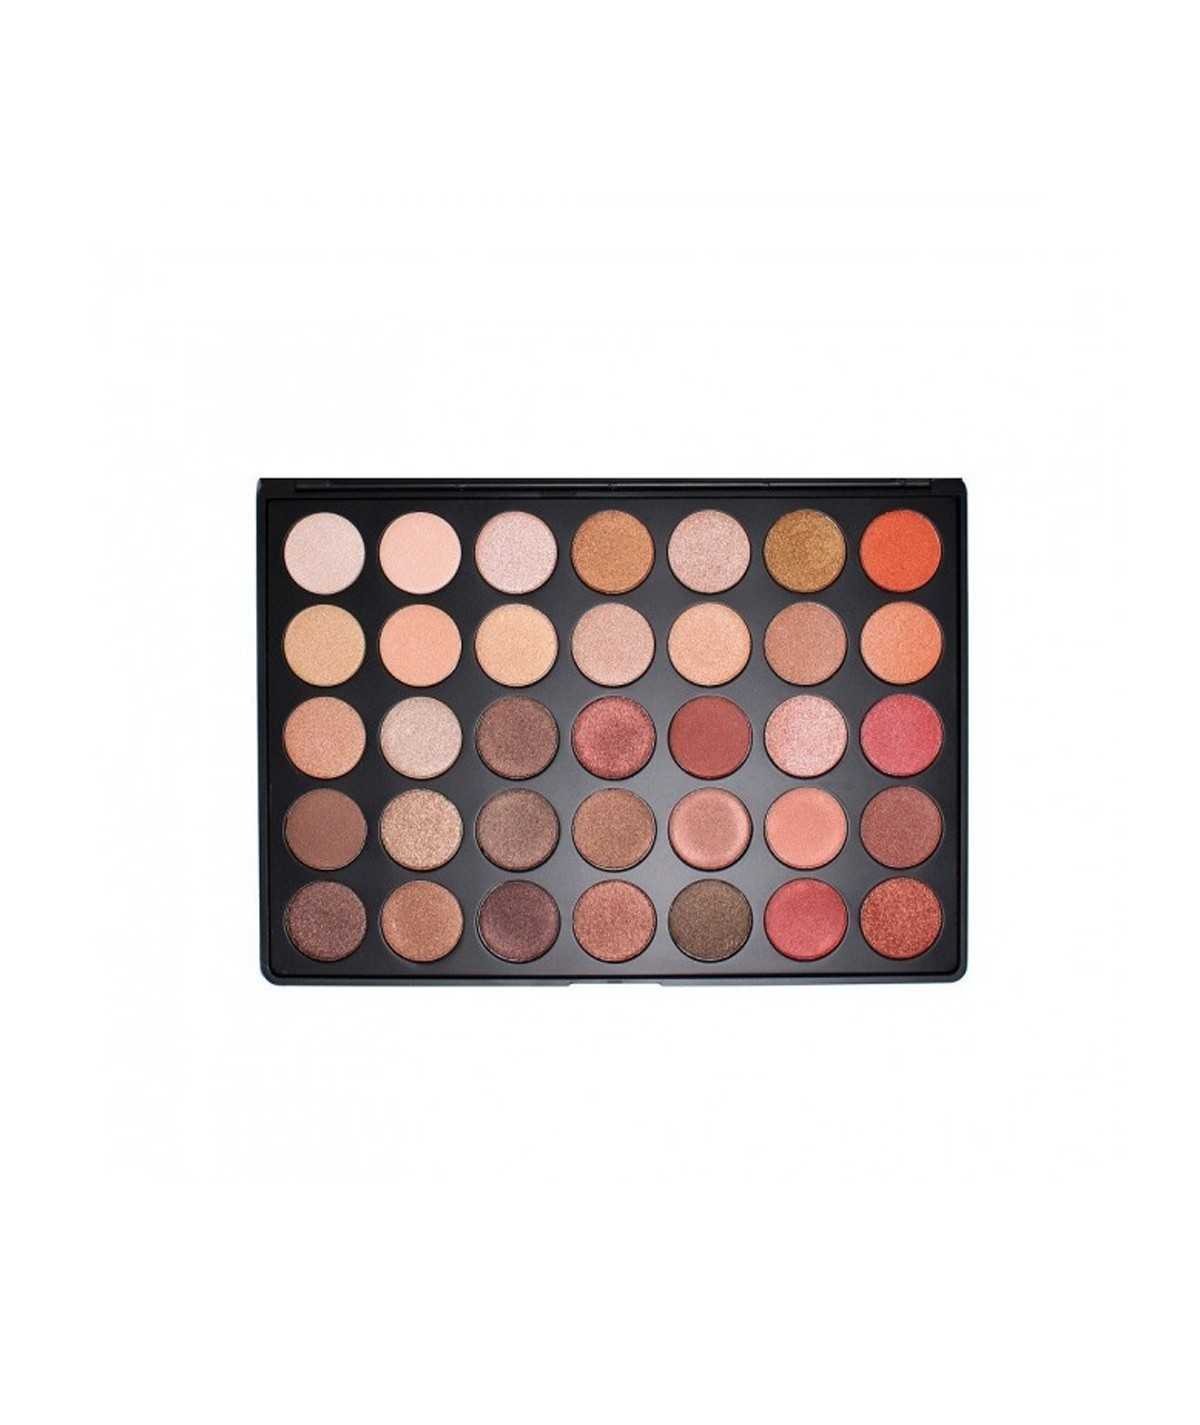 Morphe 35OS - Shimmer Nature Glow Eyeshadow Palette